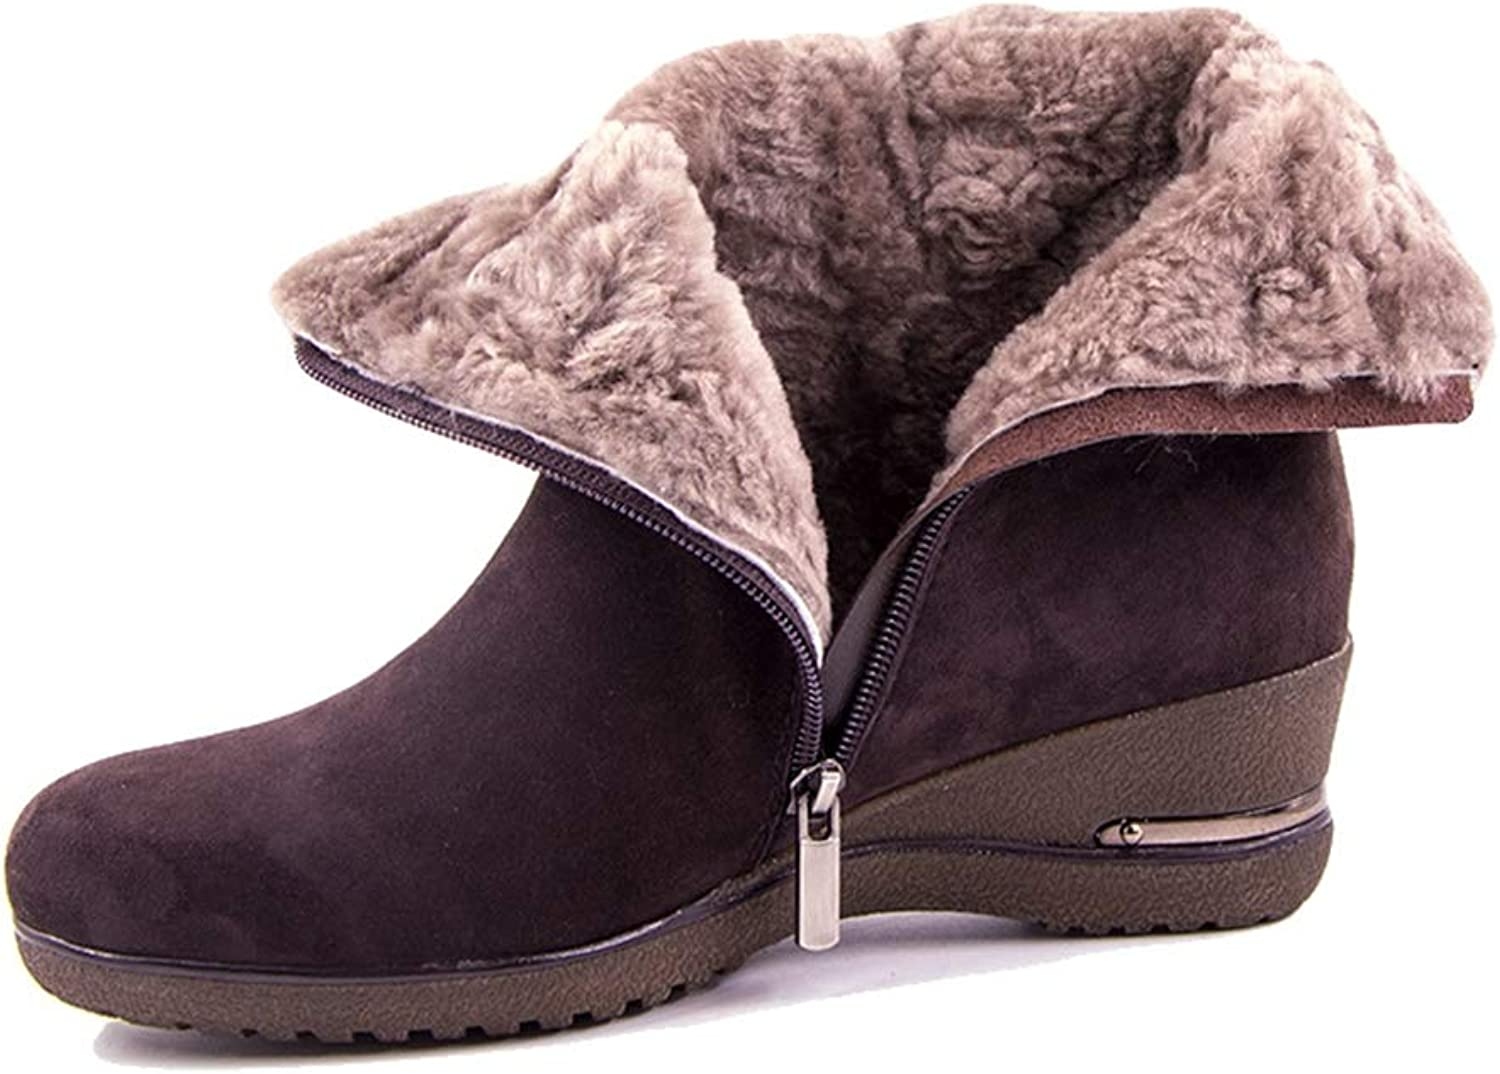 Kyle Walsh Pa Women New Winter Sheep Suede Wool Fur Plush Winter Genuine Leather Footwear Ankle Boots